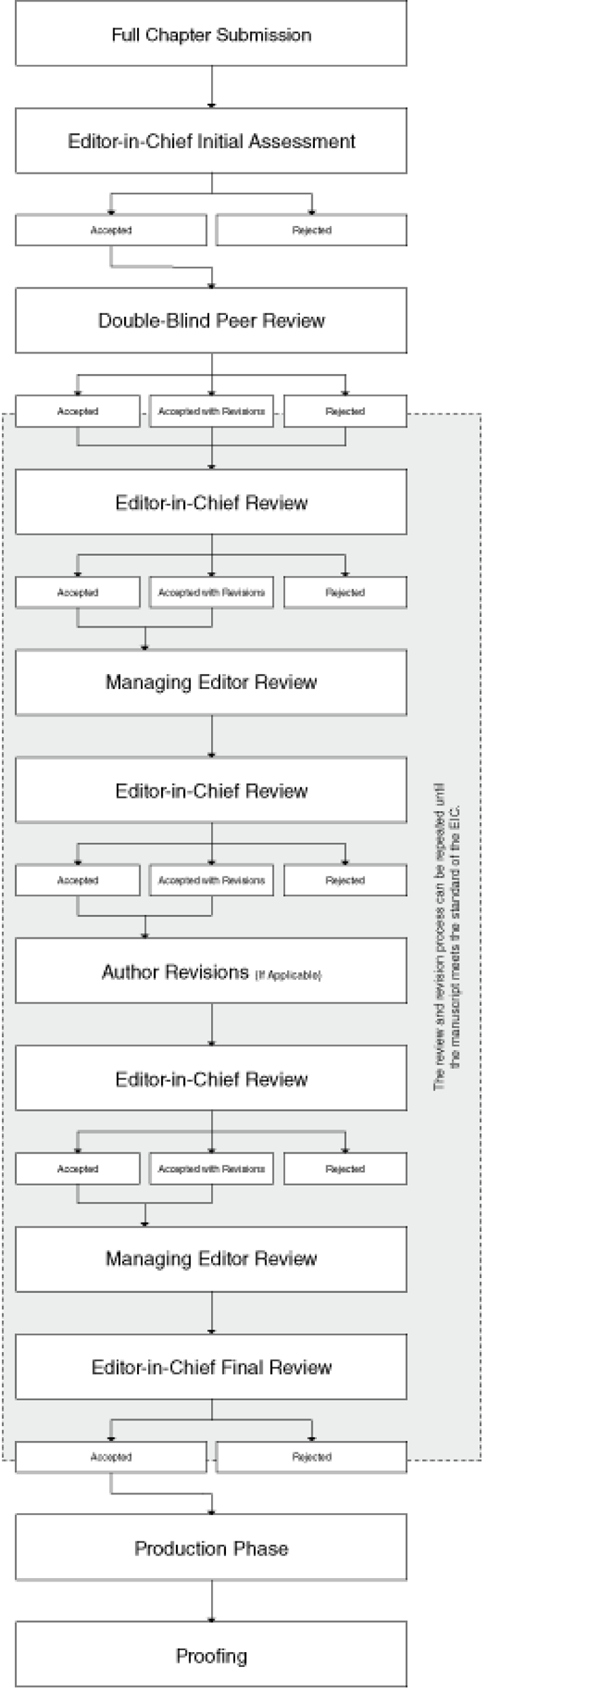 Peer Review Overview